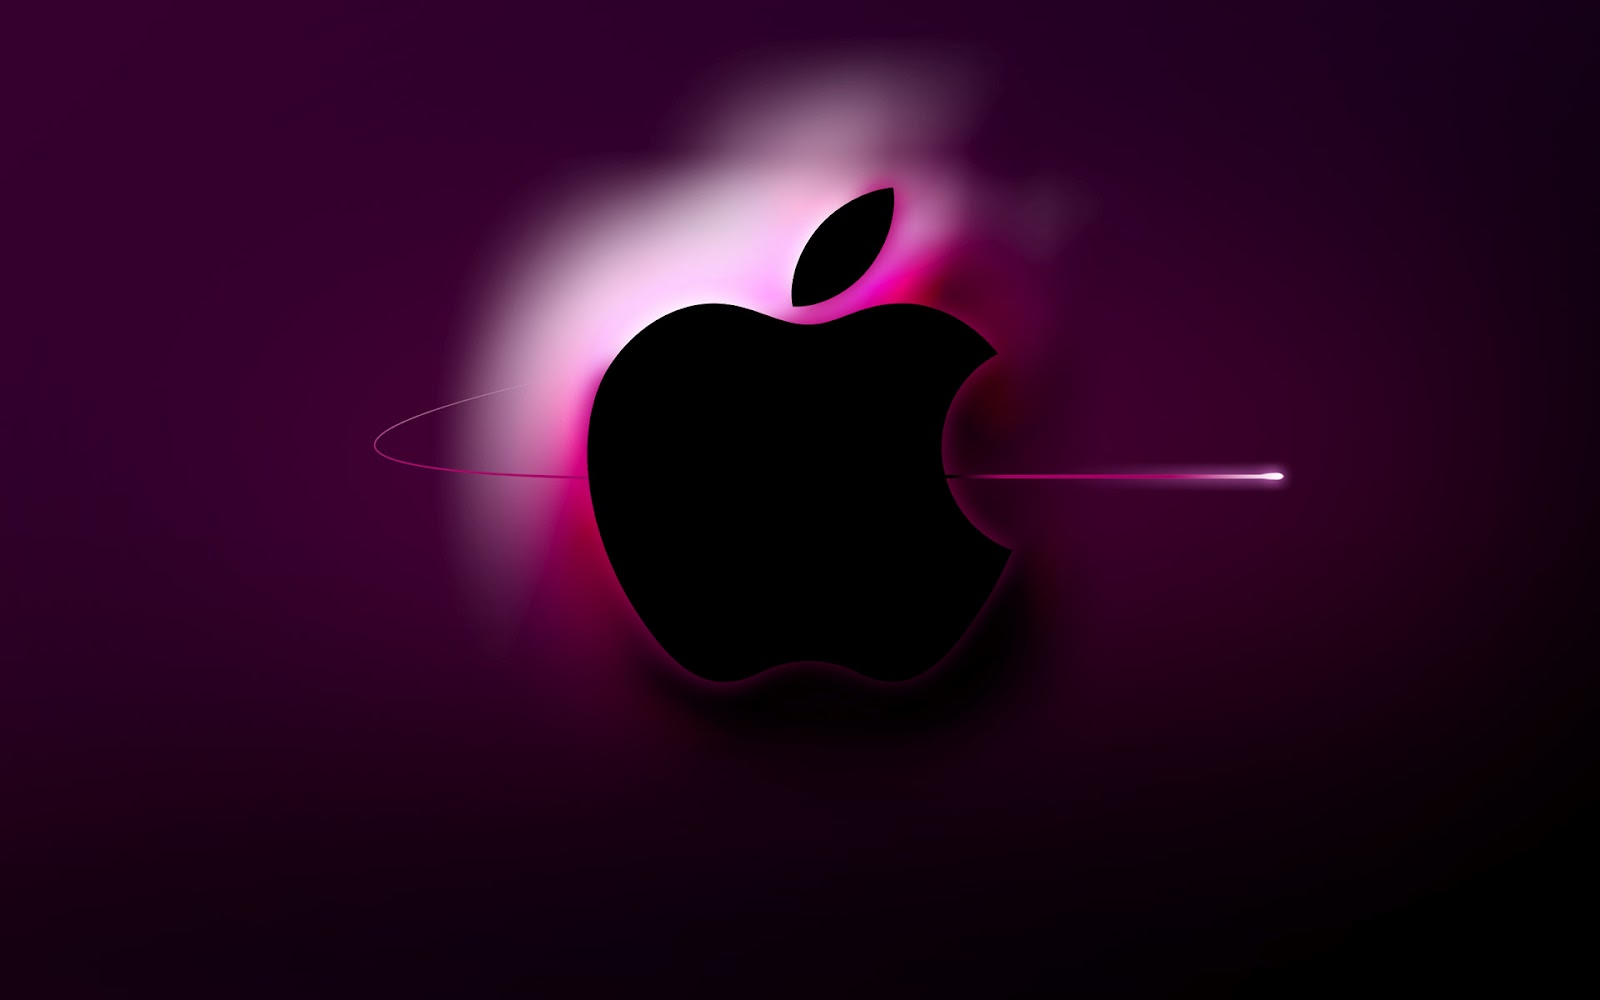 APPLE iPhone WALLPAPERS ~ HD WALLPAPERS